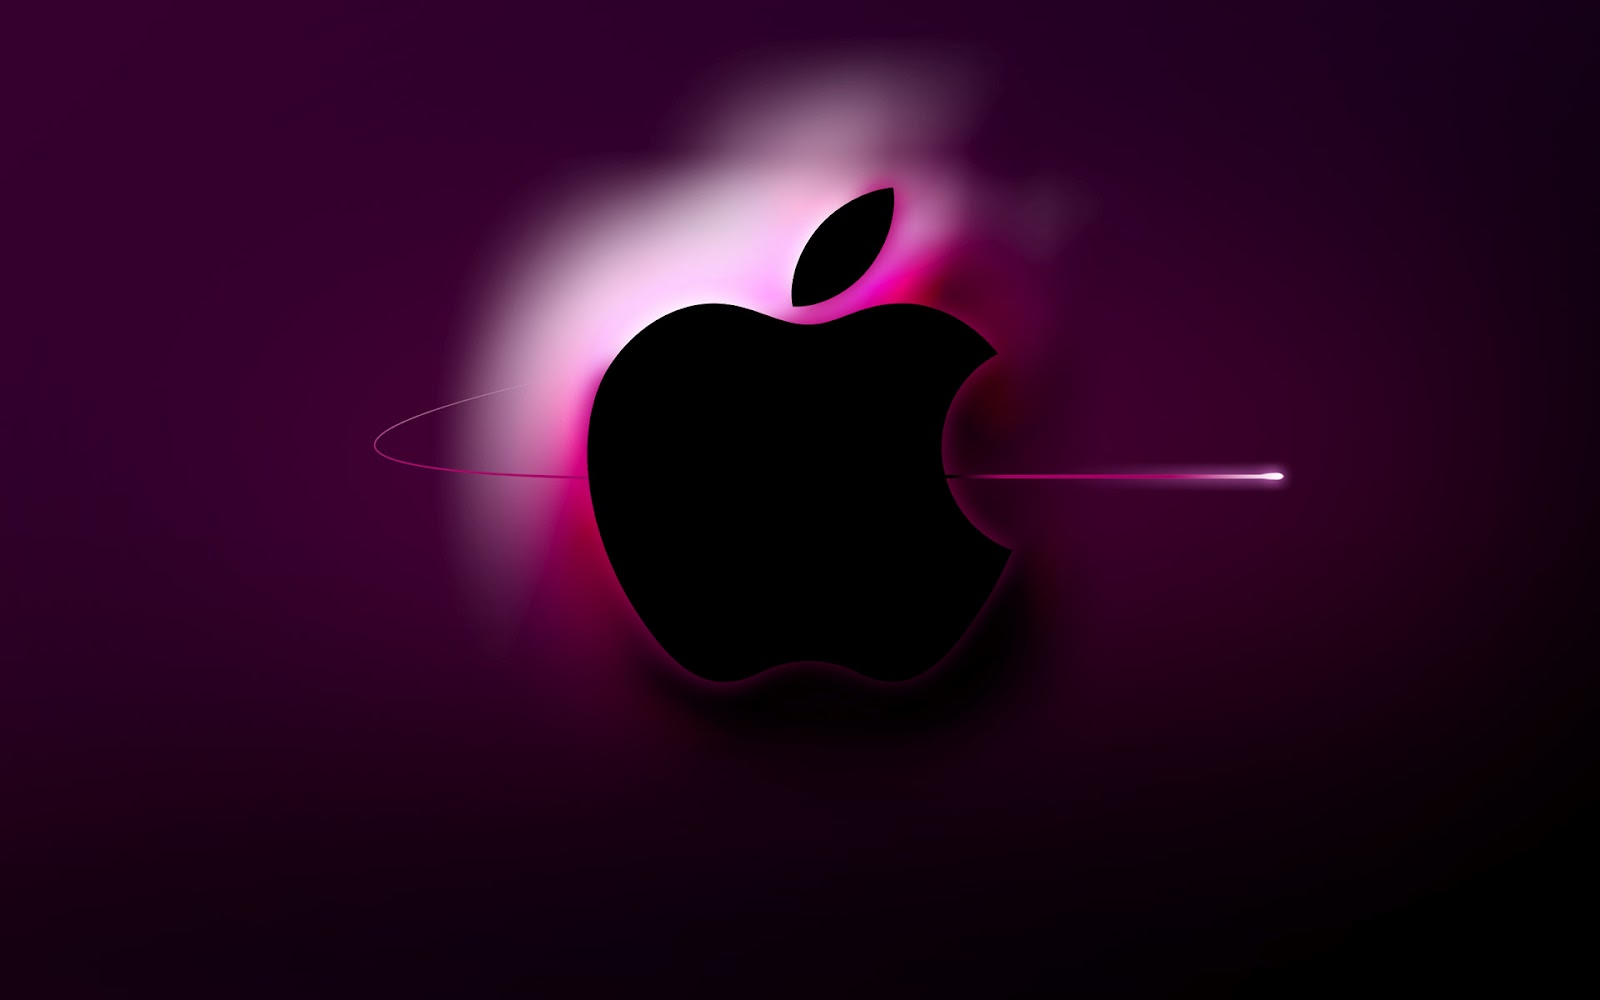 APPLE iPhone WALLPAPERS ~ HD WALLPAPERS